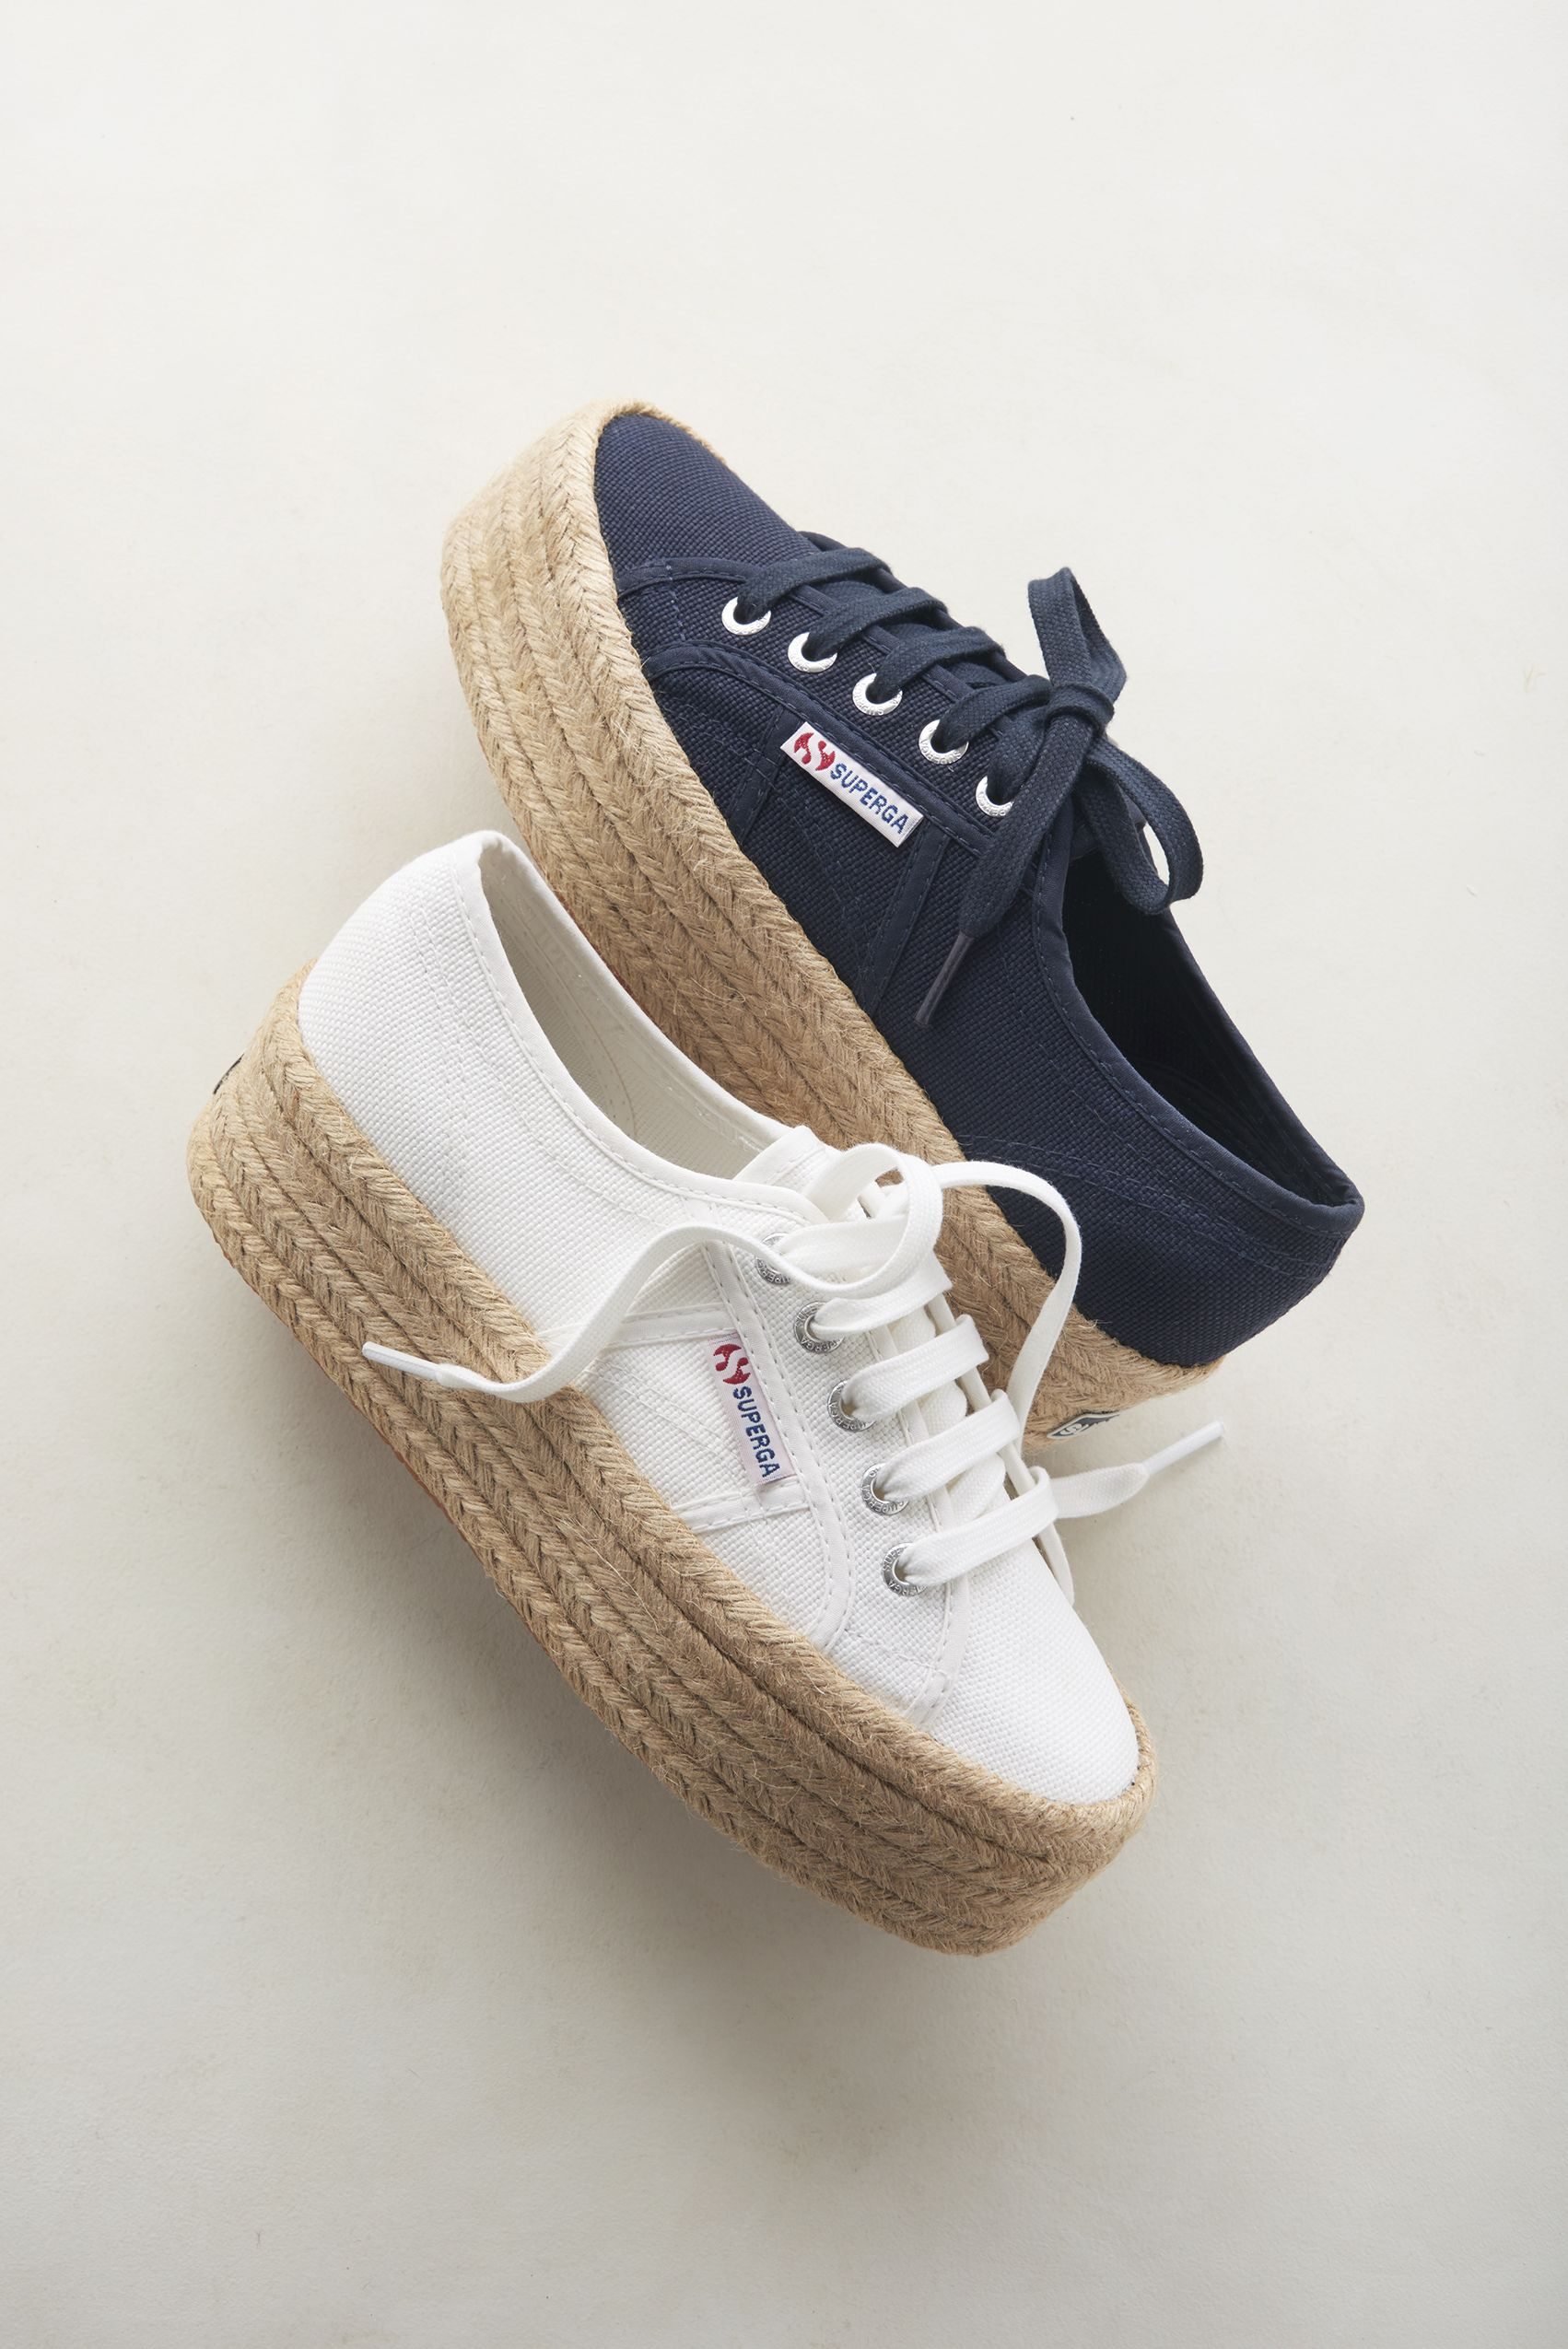 Superga raffia-wrapped platform sneaker (in white and navy ...